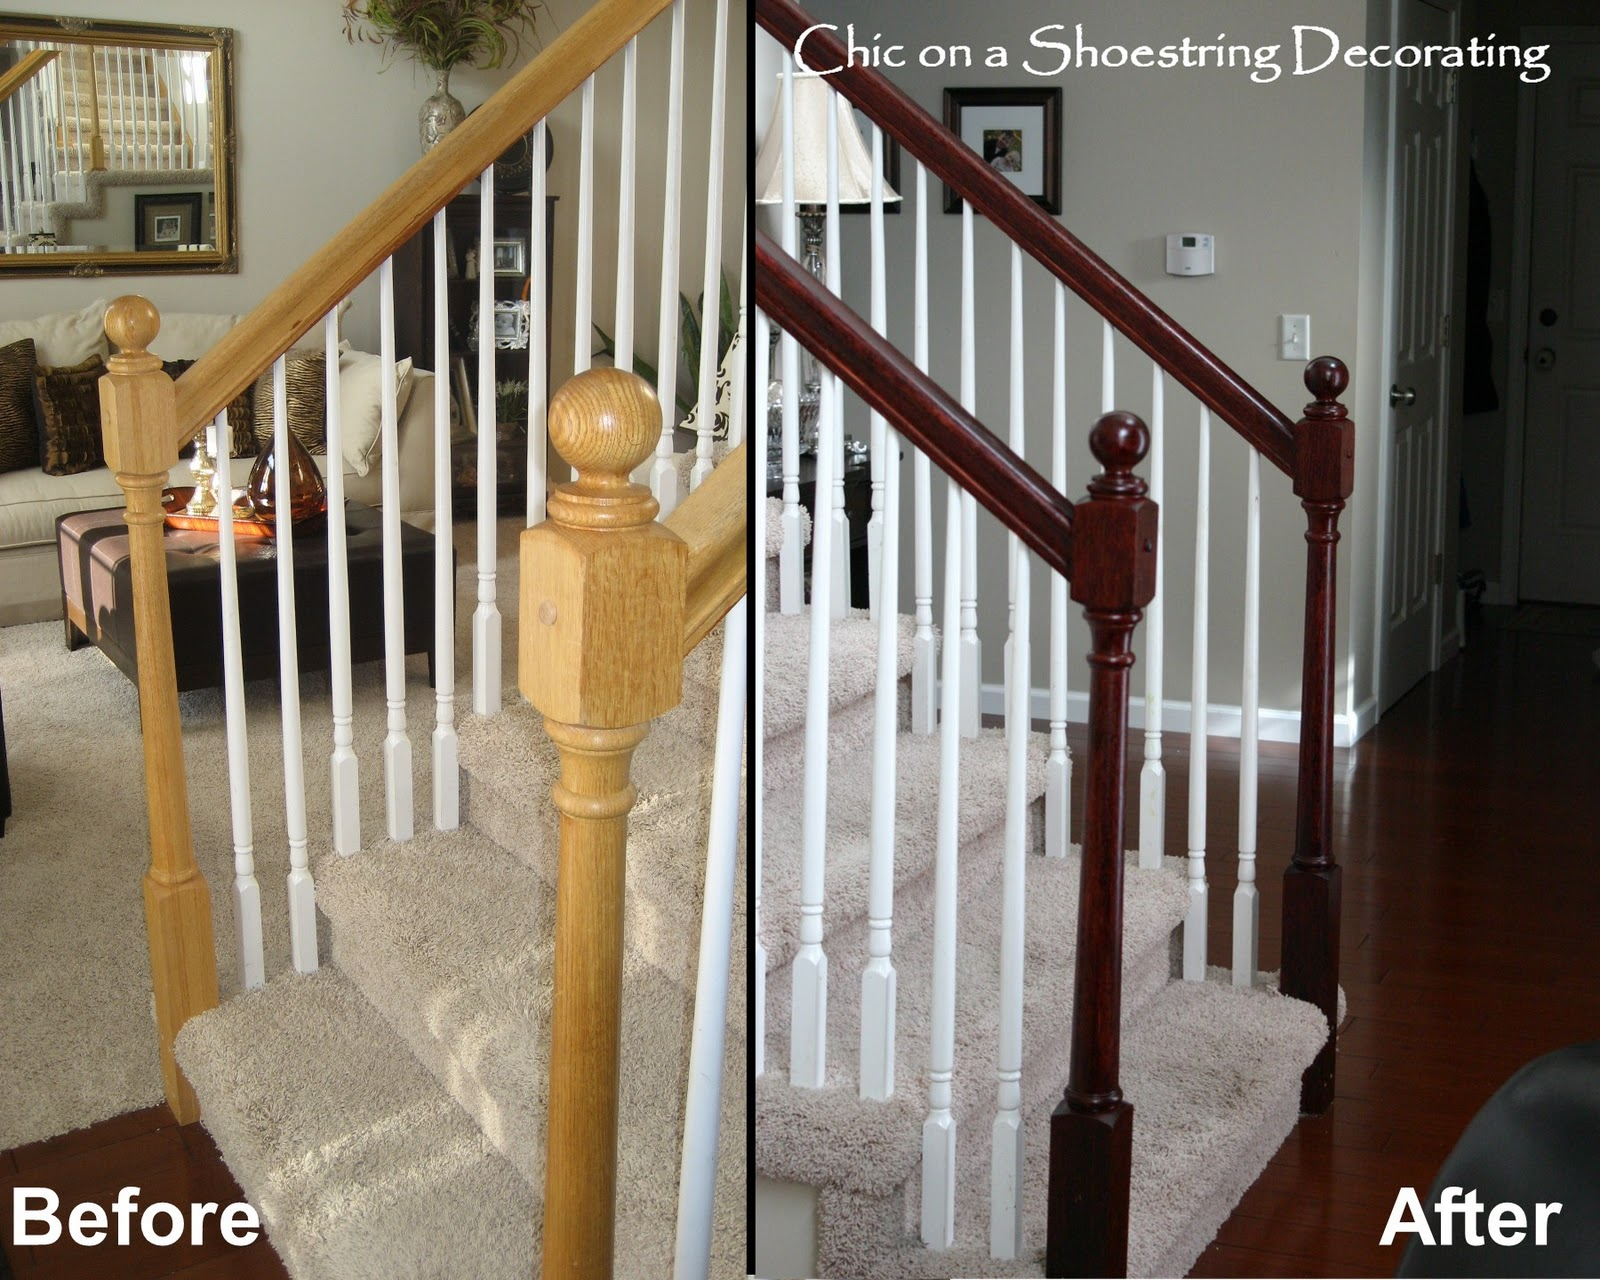 Chic On A Shoestring Decorating How To Stain Stair Railings And   Stair Rails Near Me   Glass Railing   Deck   Stair Treads   Oak Stair Parts   Wood